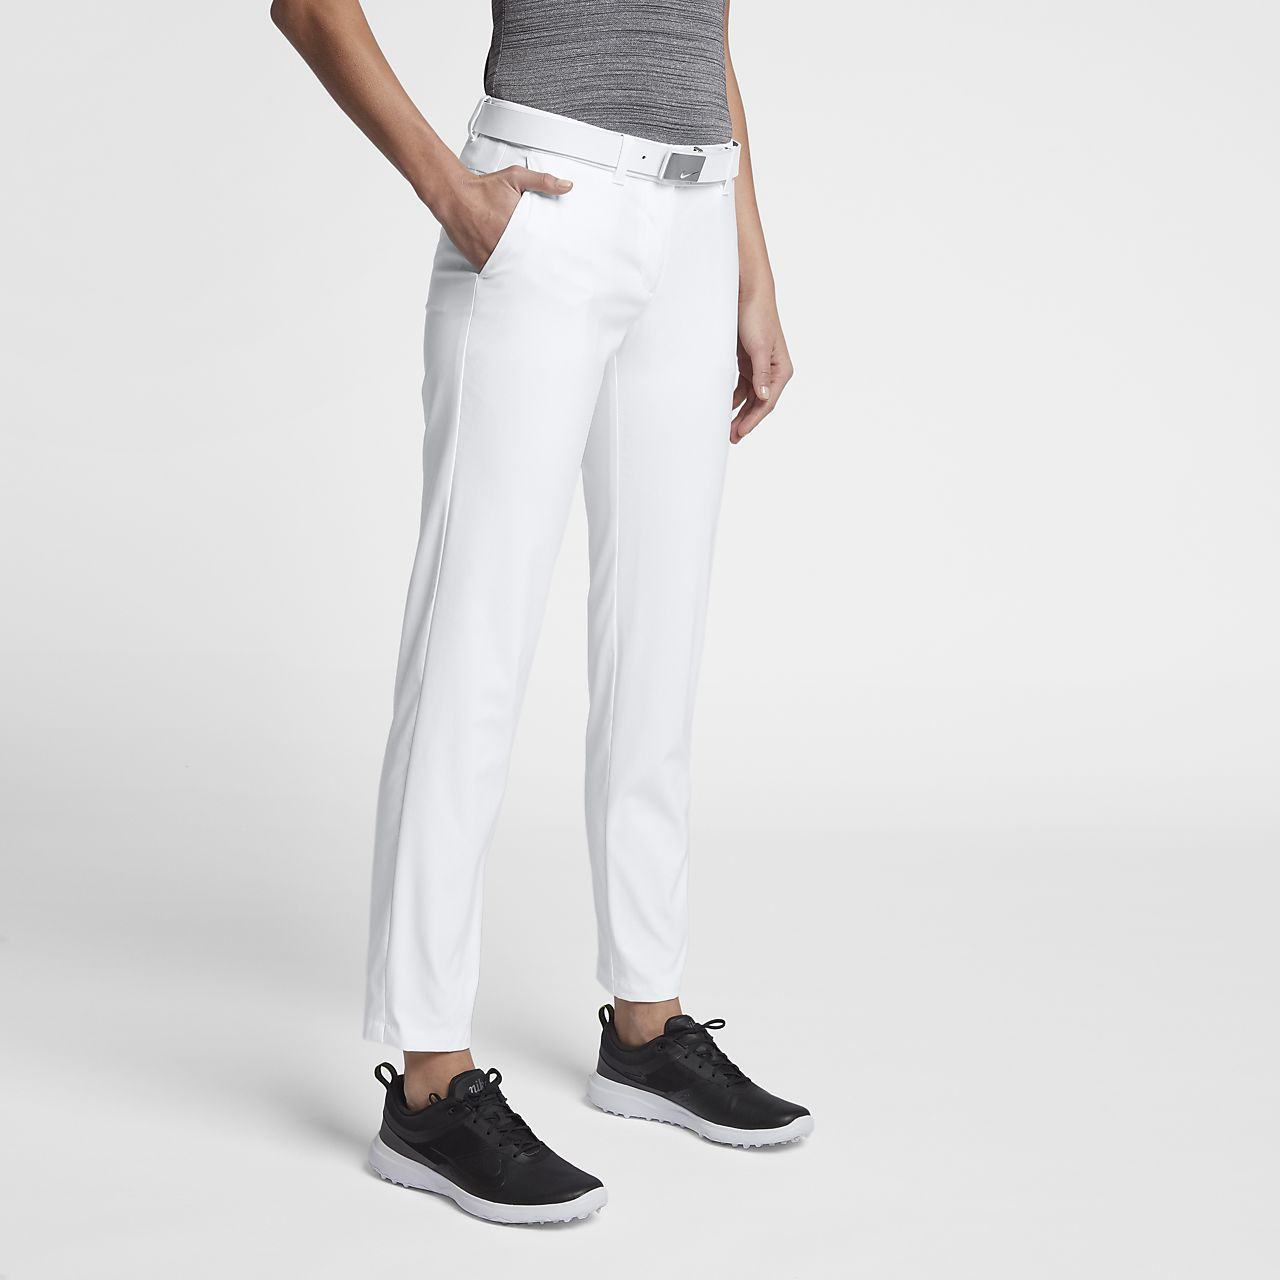 Nike Flex Women's Golf Pants